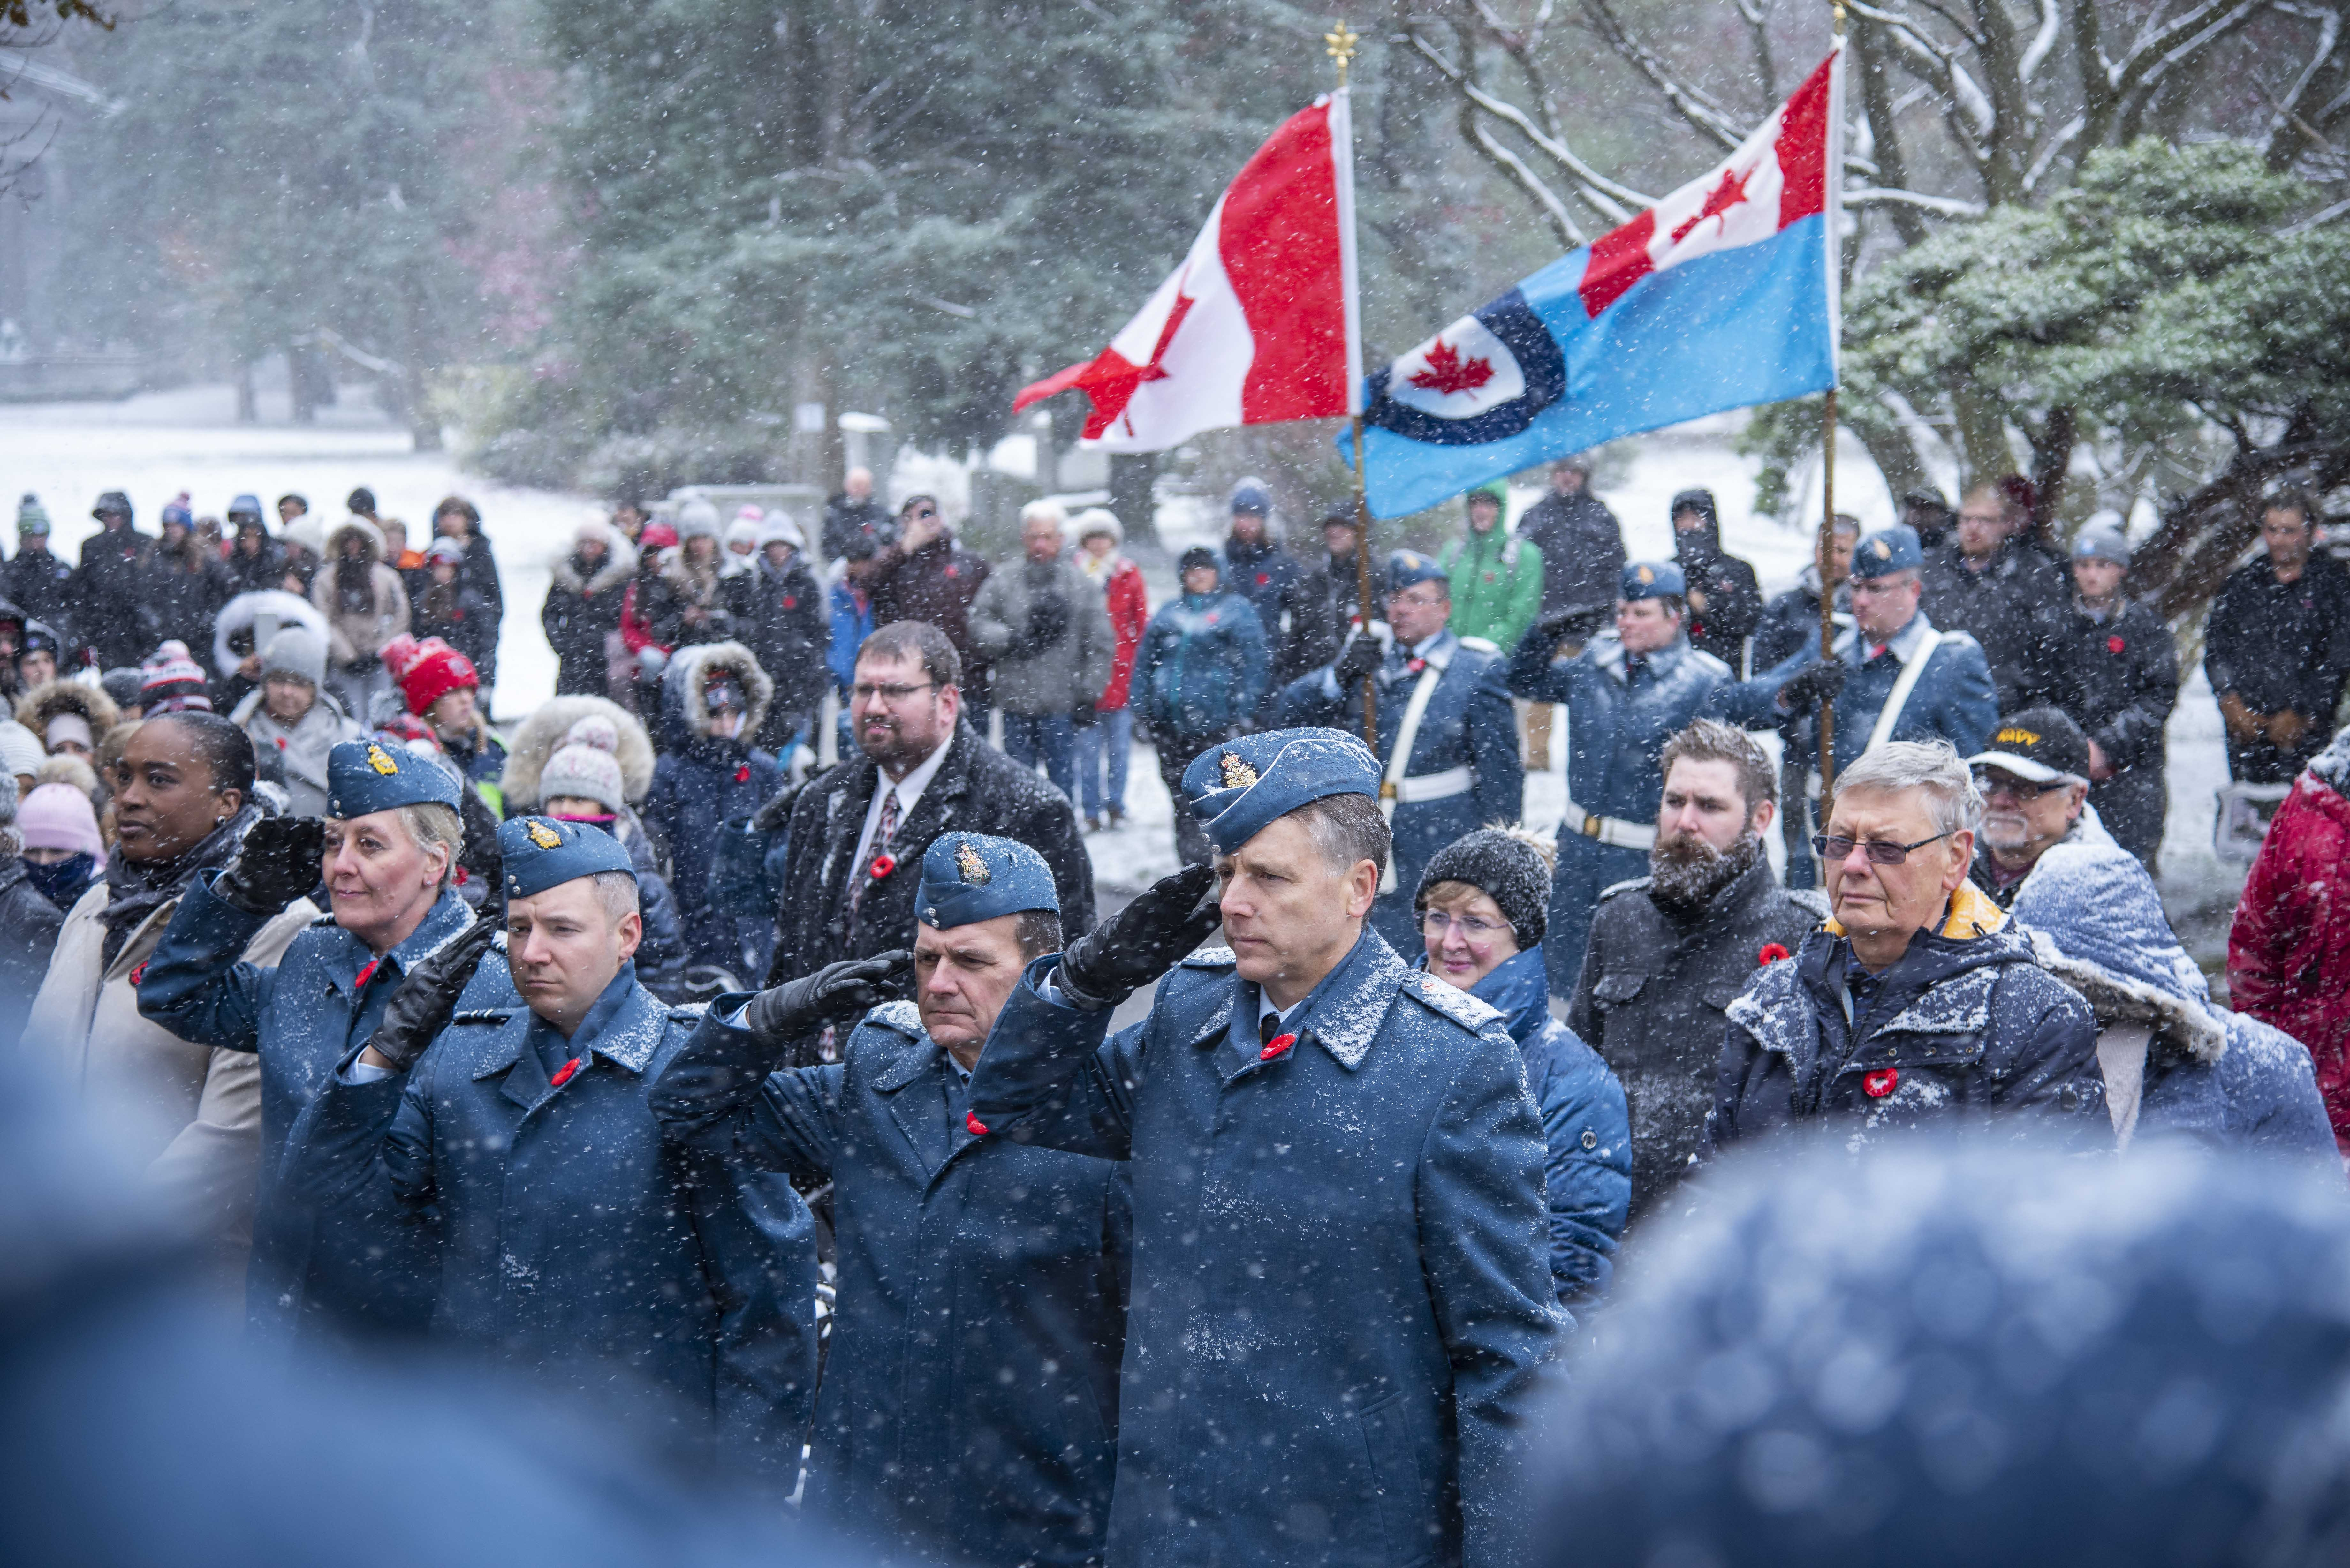 Four people dressed in Air Force uniforms salute, as snow falls. They are surrounded by a crowd of people.